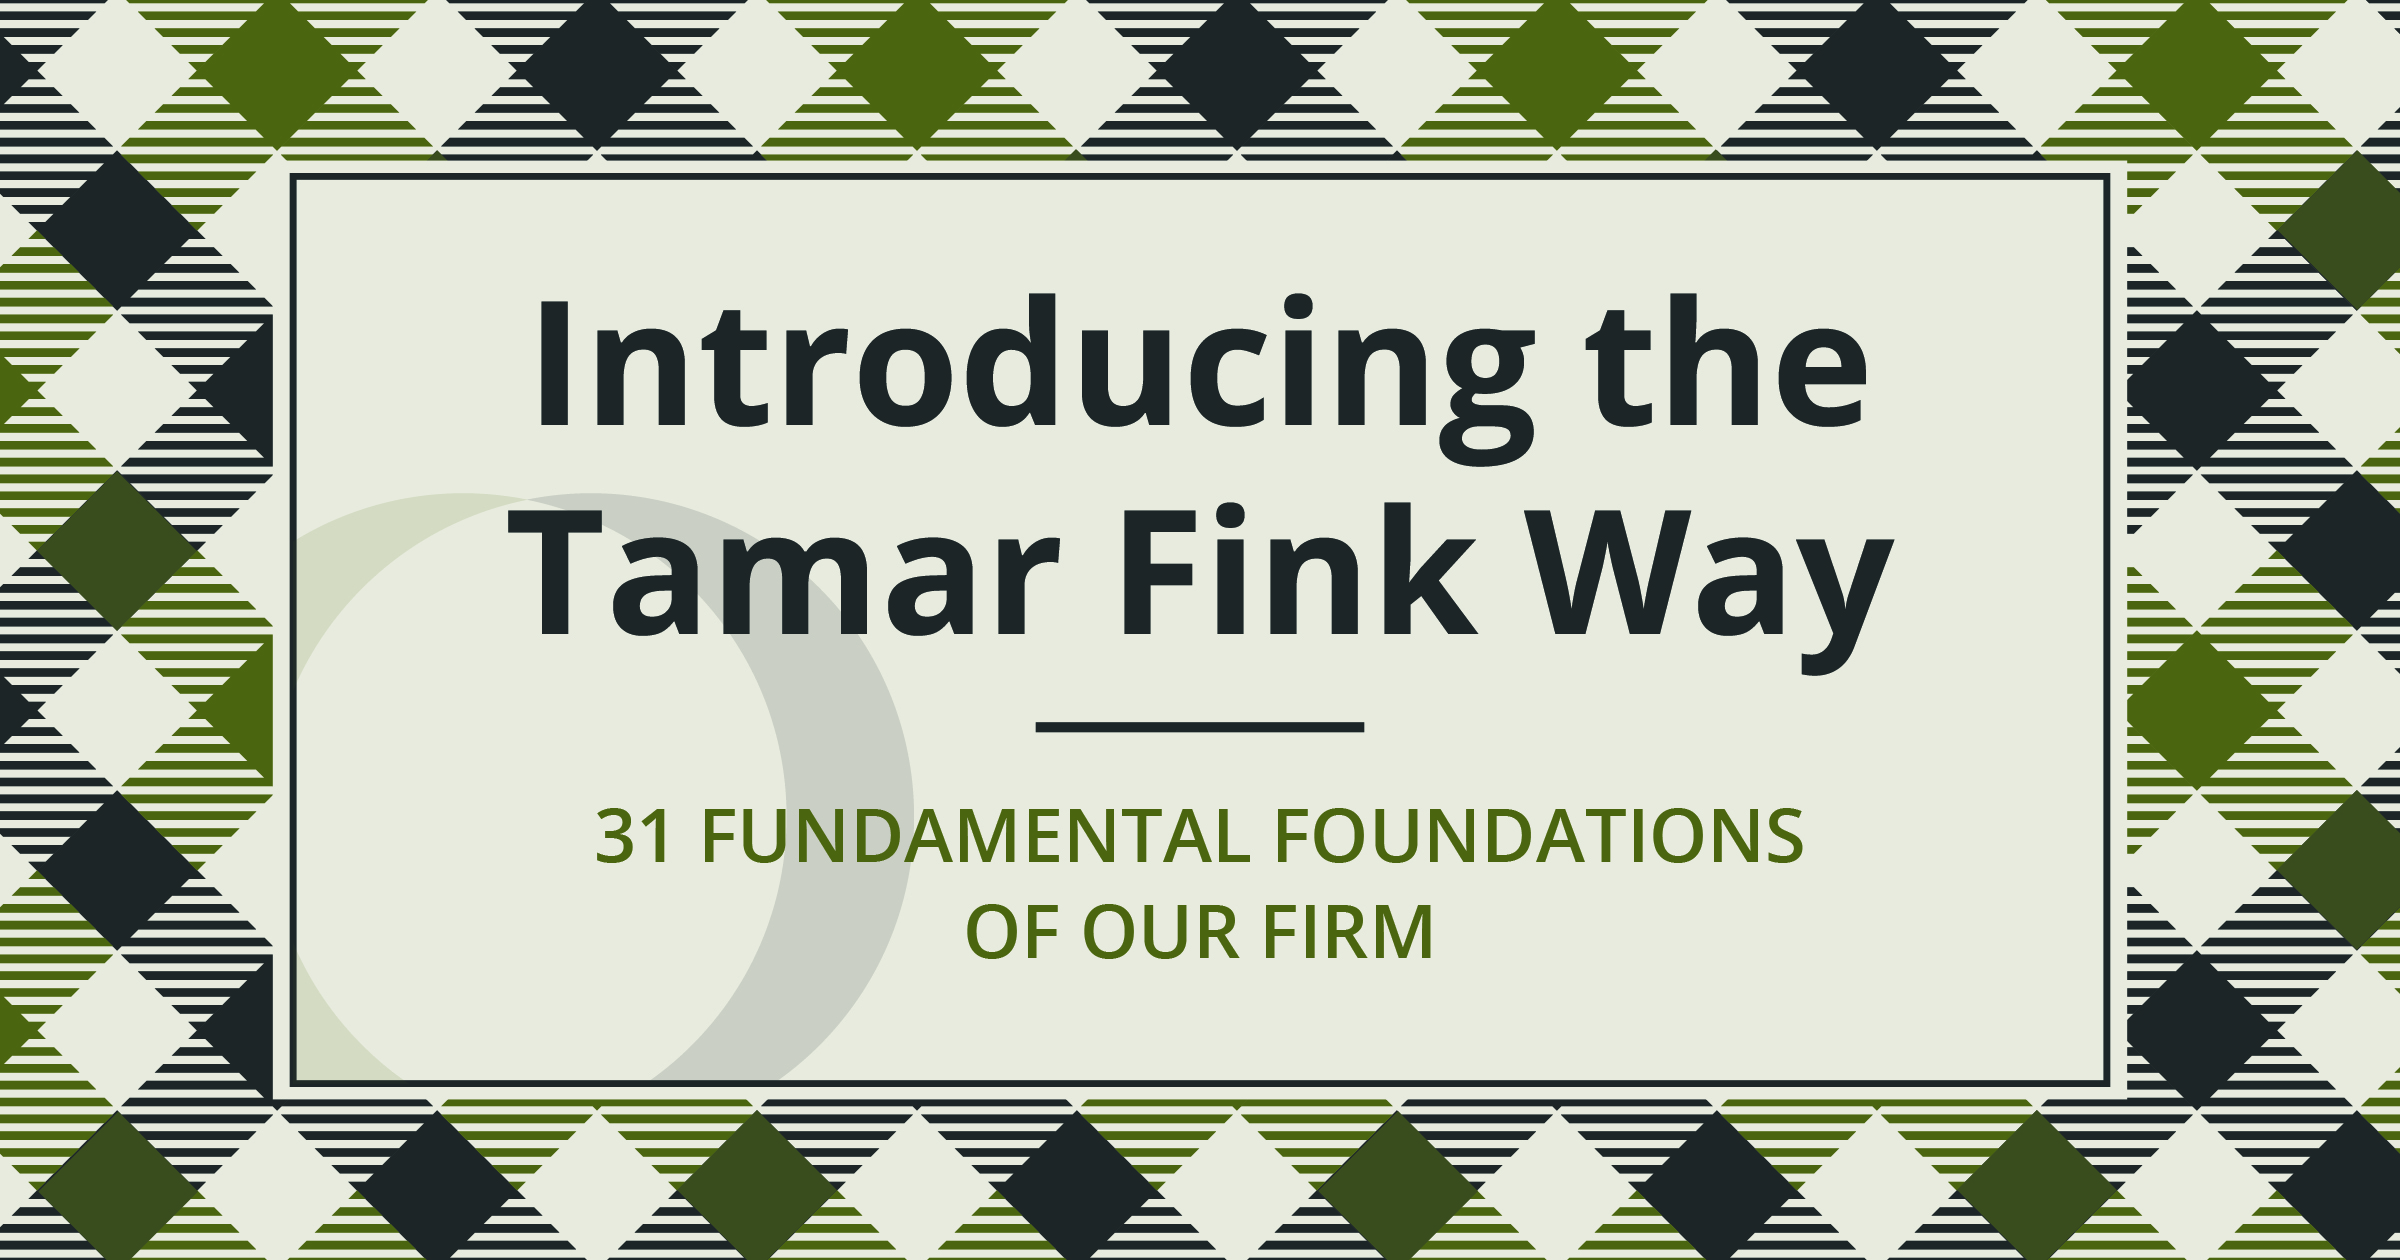 Introducing The Tamar Fink Way